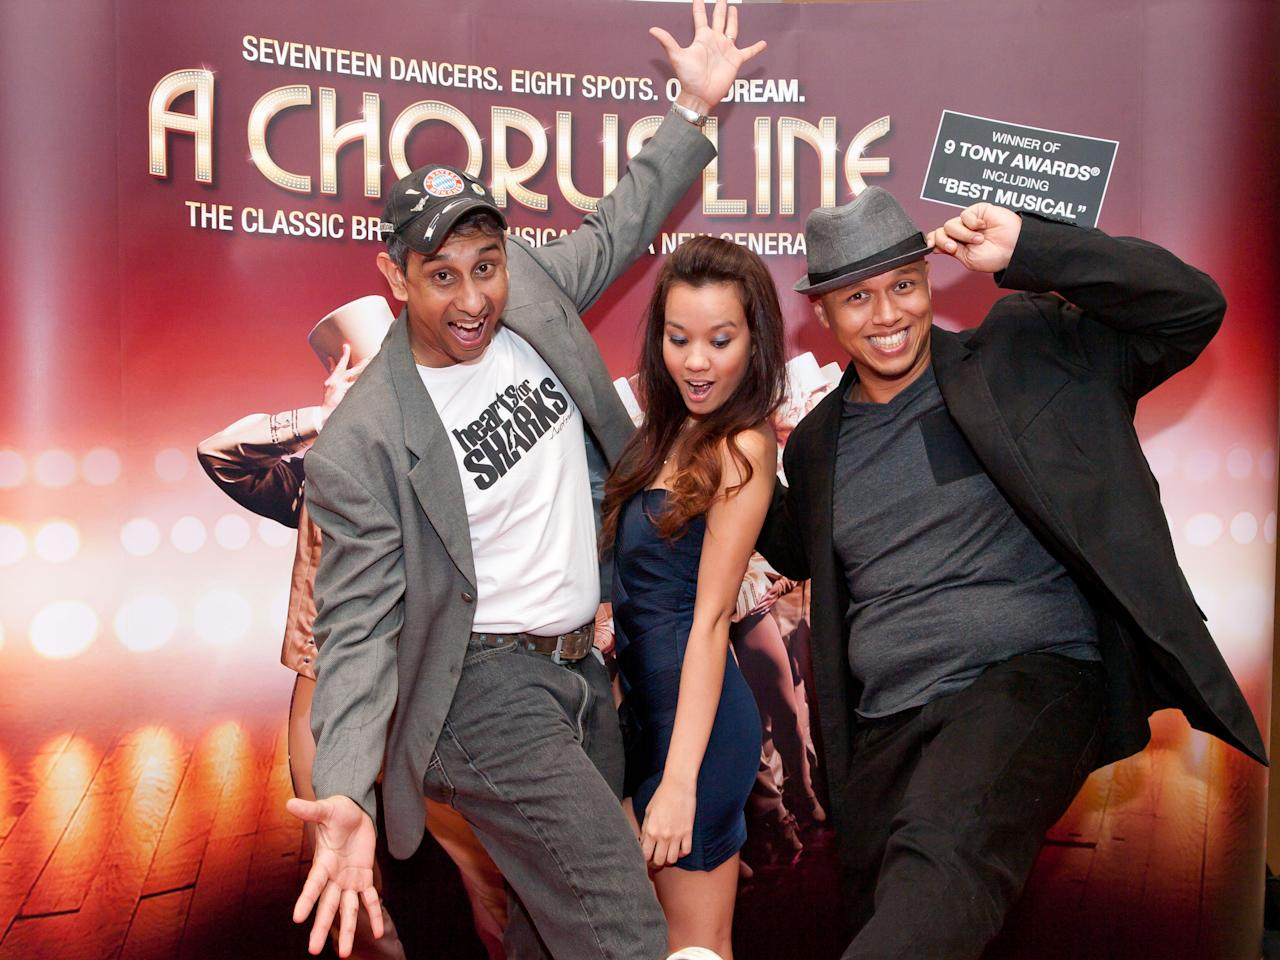 Celebrities at The Chorus Line's Red Carpet event. (Yahoo! photo/Alvin Ho)